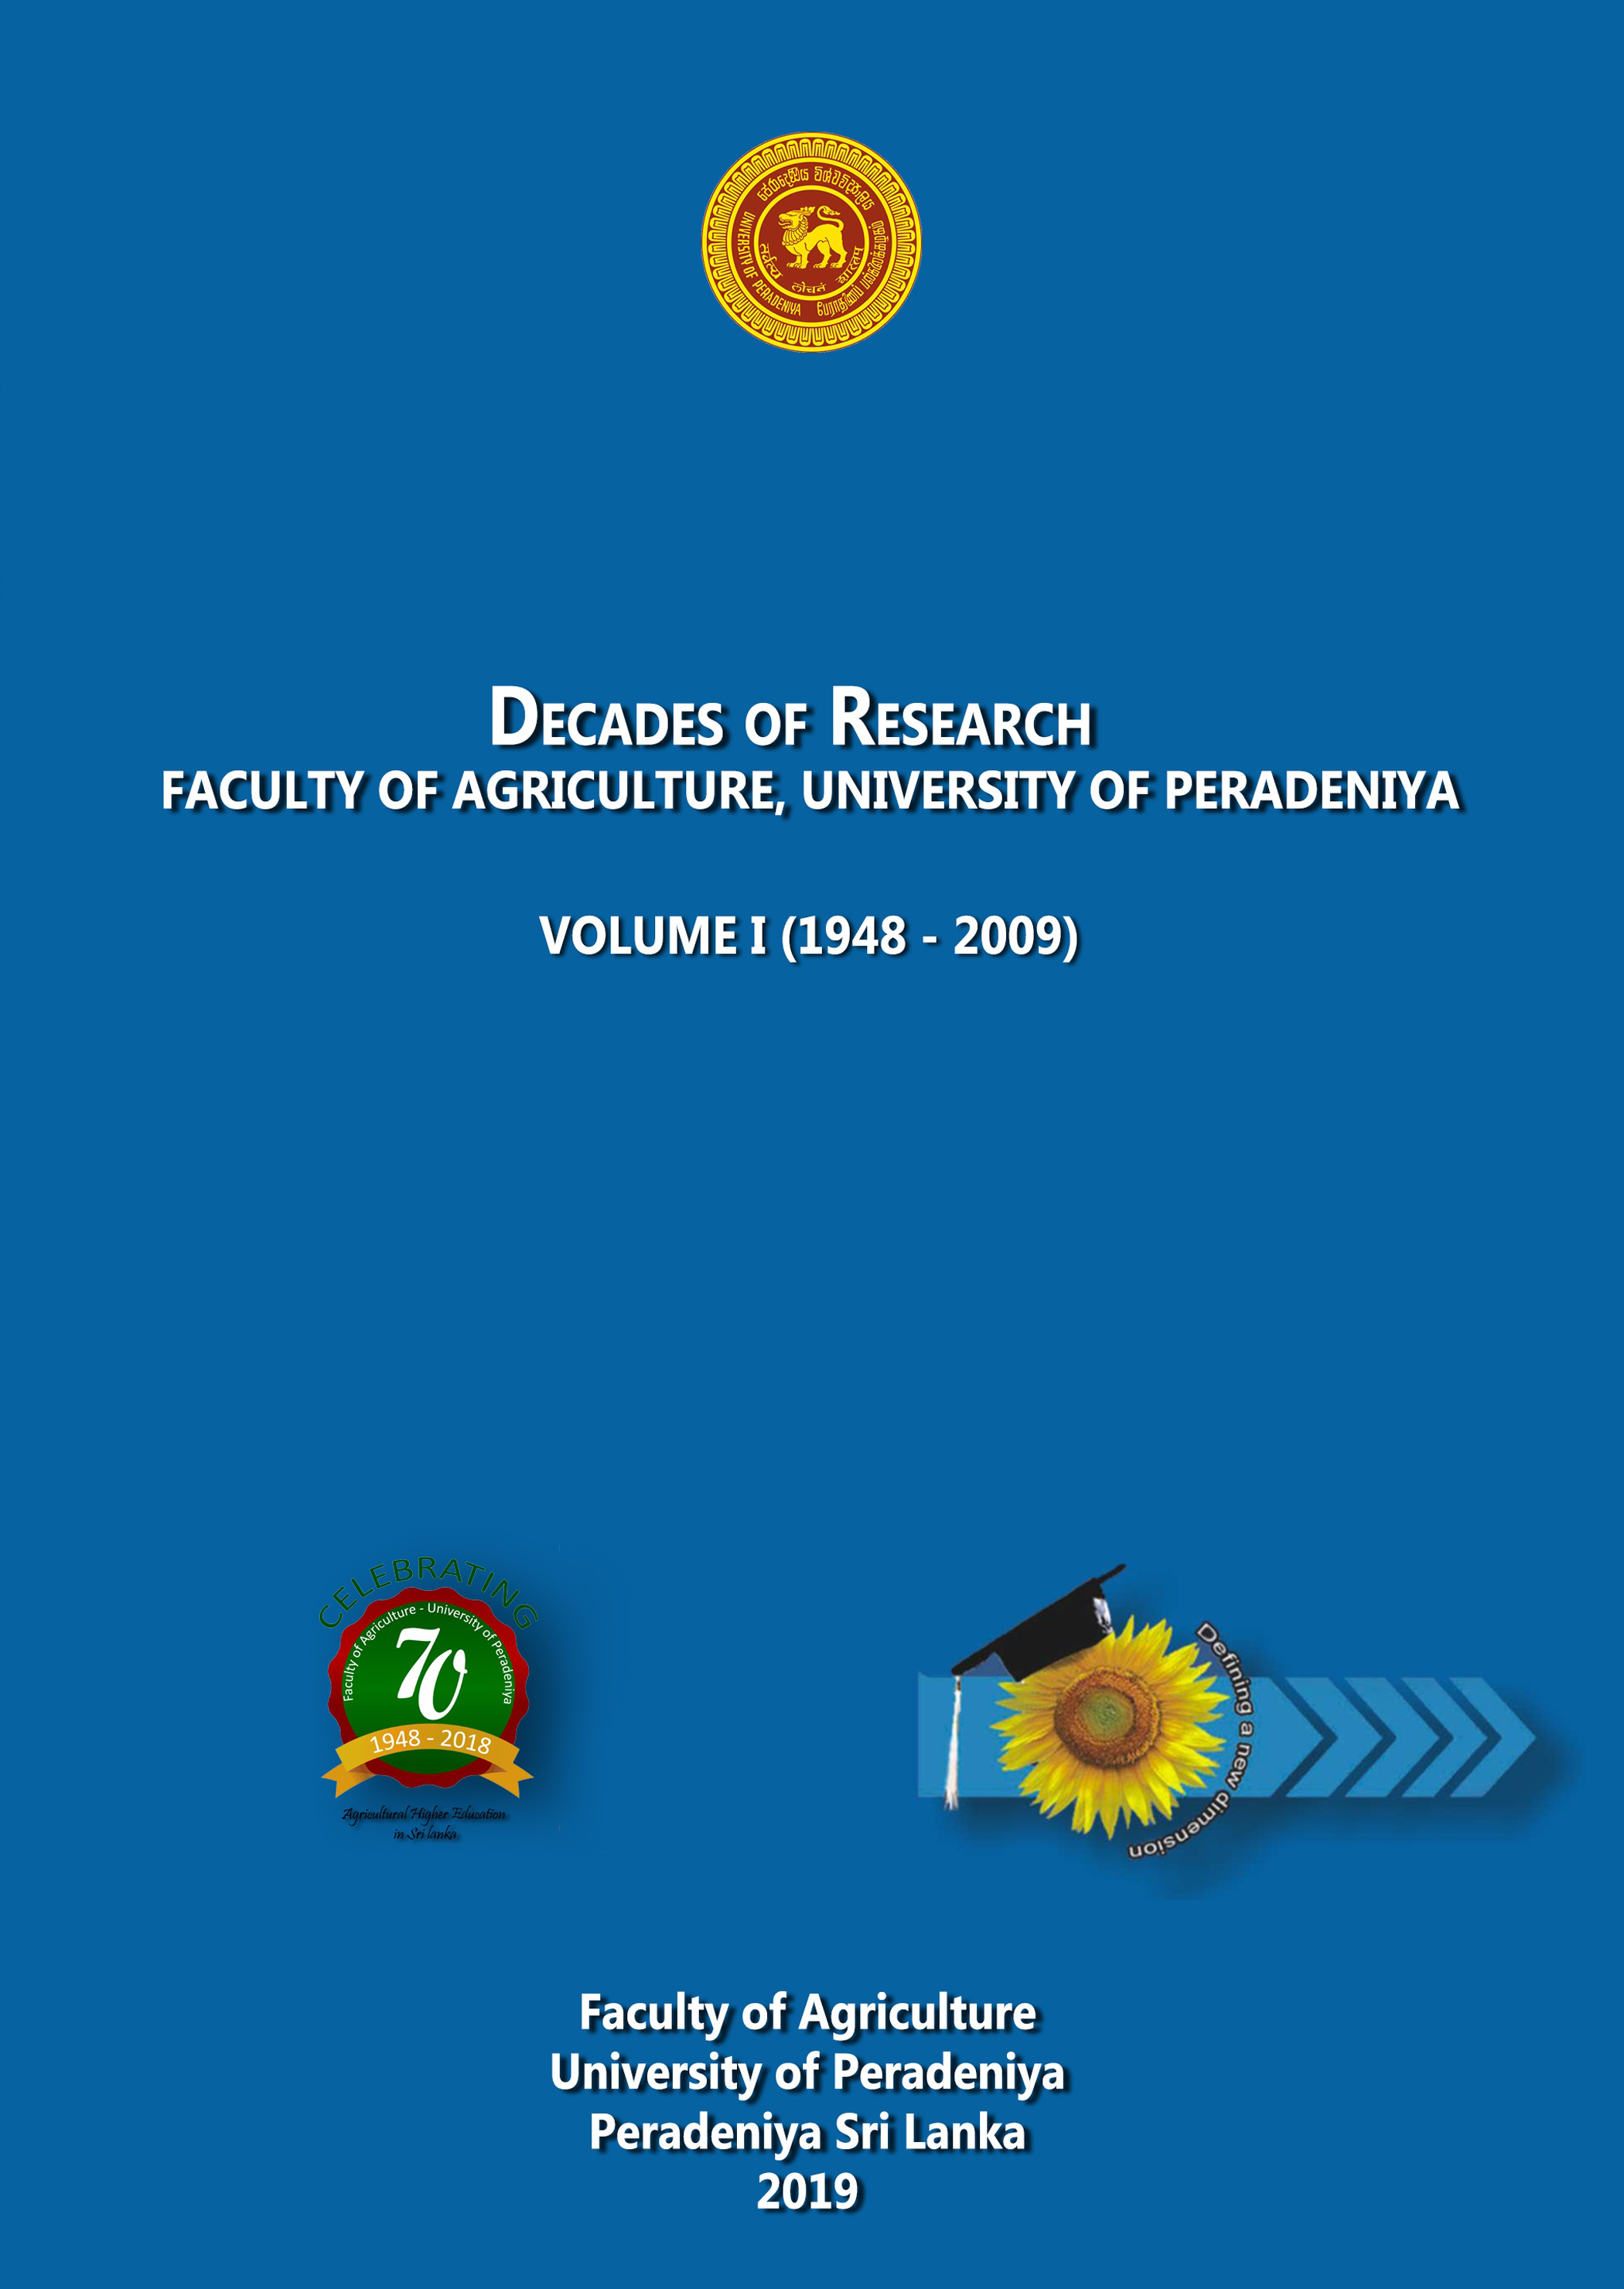 Faculty Organization